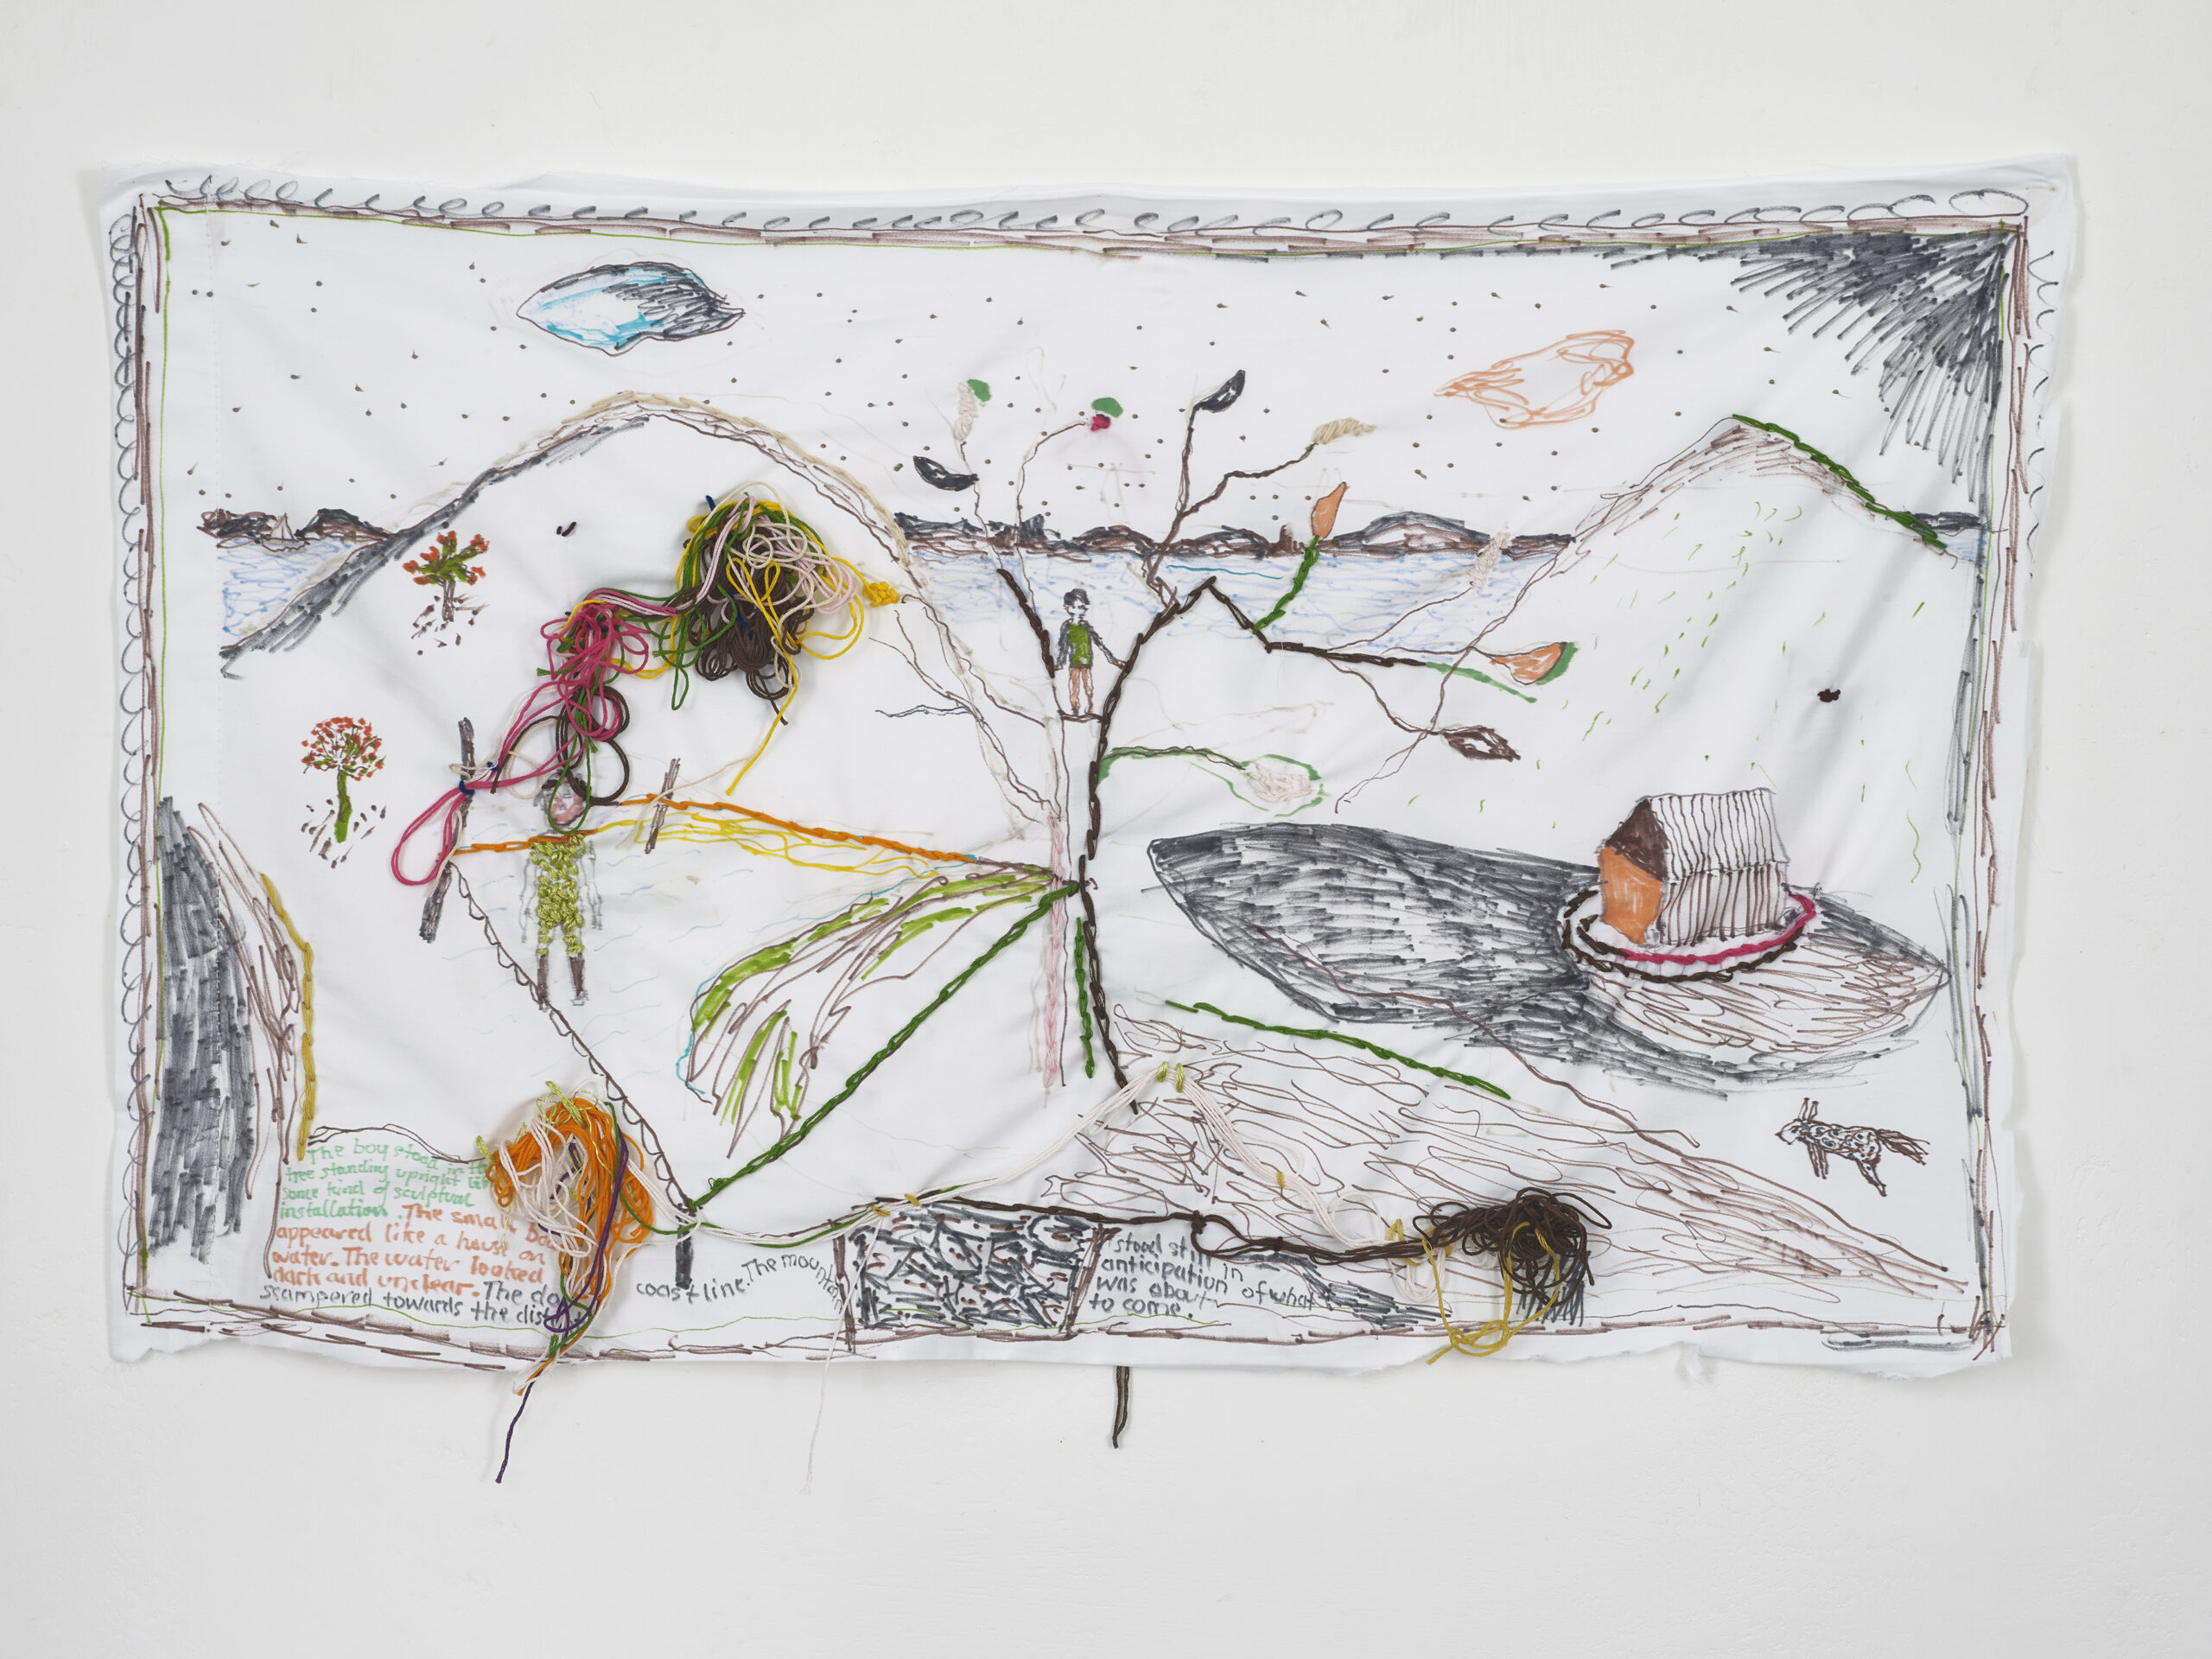 Brian Dawn Chalkley Anticipation of what was about to come (2020) Pencil, felt tip and thread on cotton pillow case, 75 cm x 45 cm.